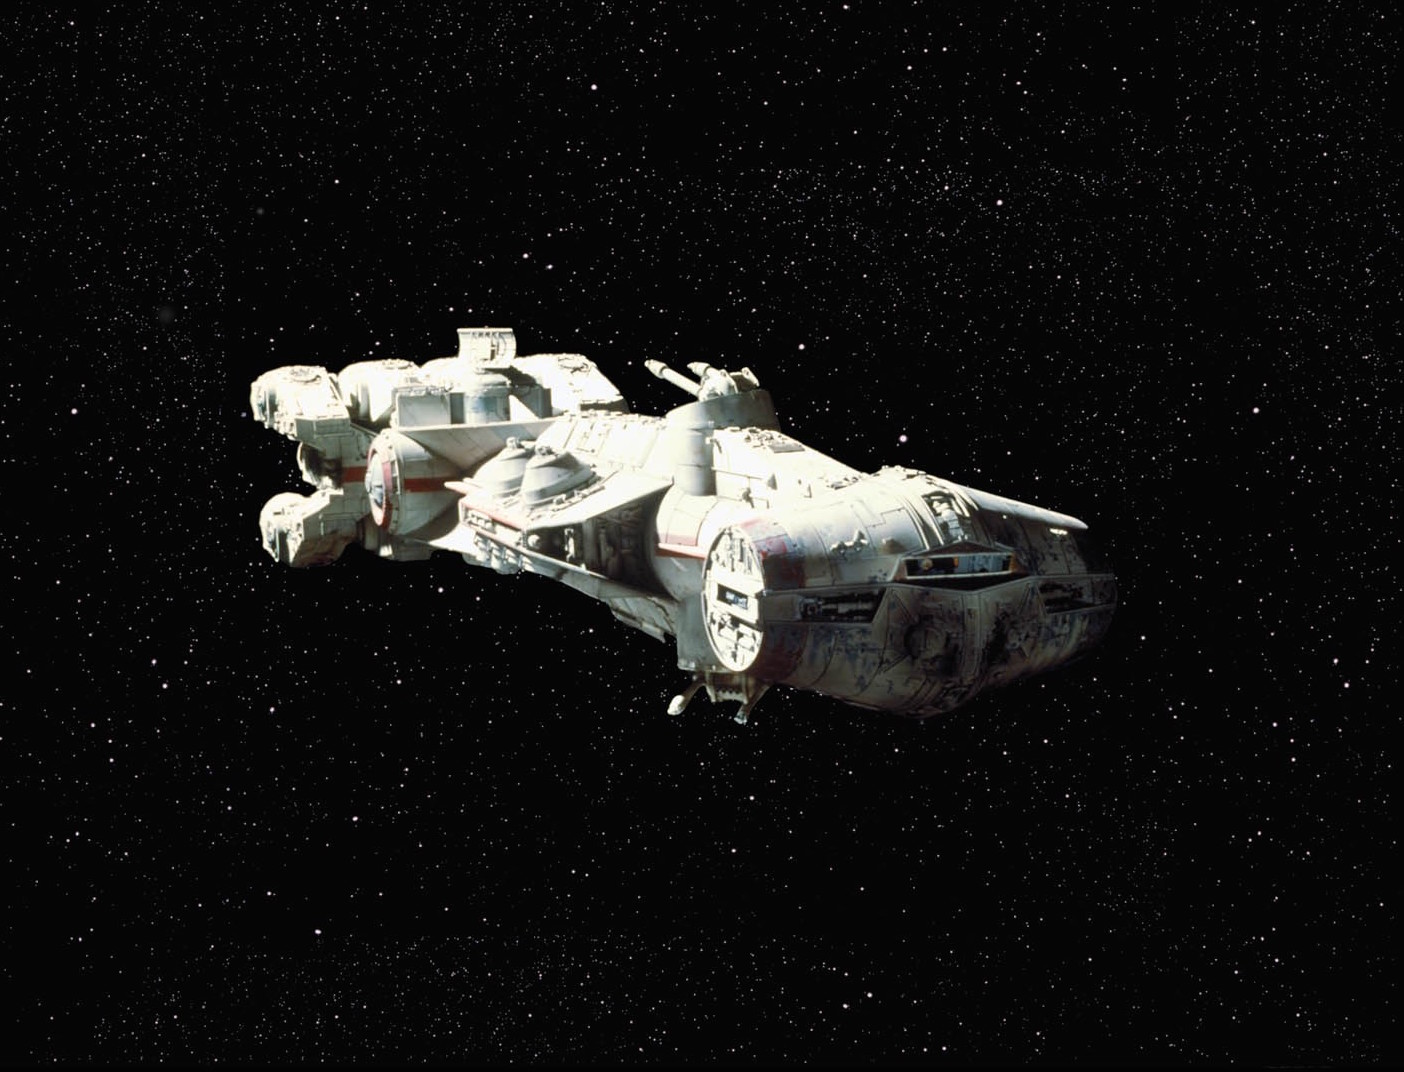 Orion Nebula Hd Wallpaper 5 Things You Might Not Know About The Millennium Falcon